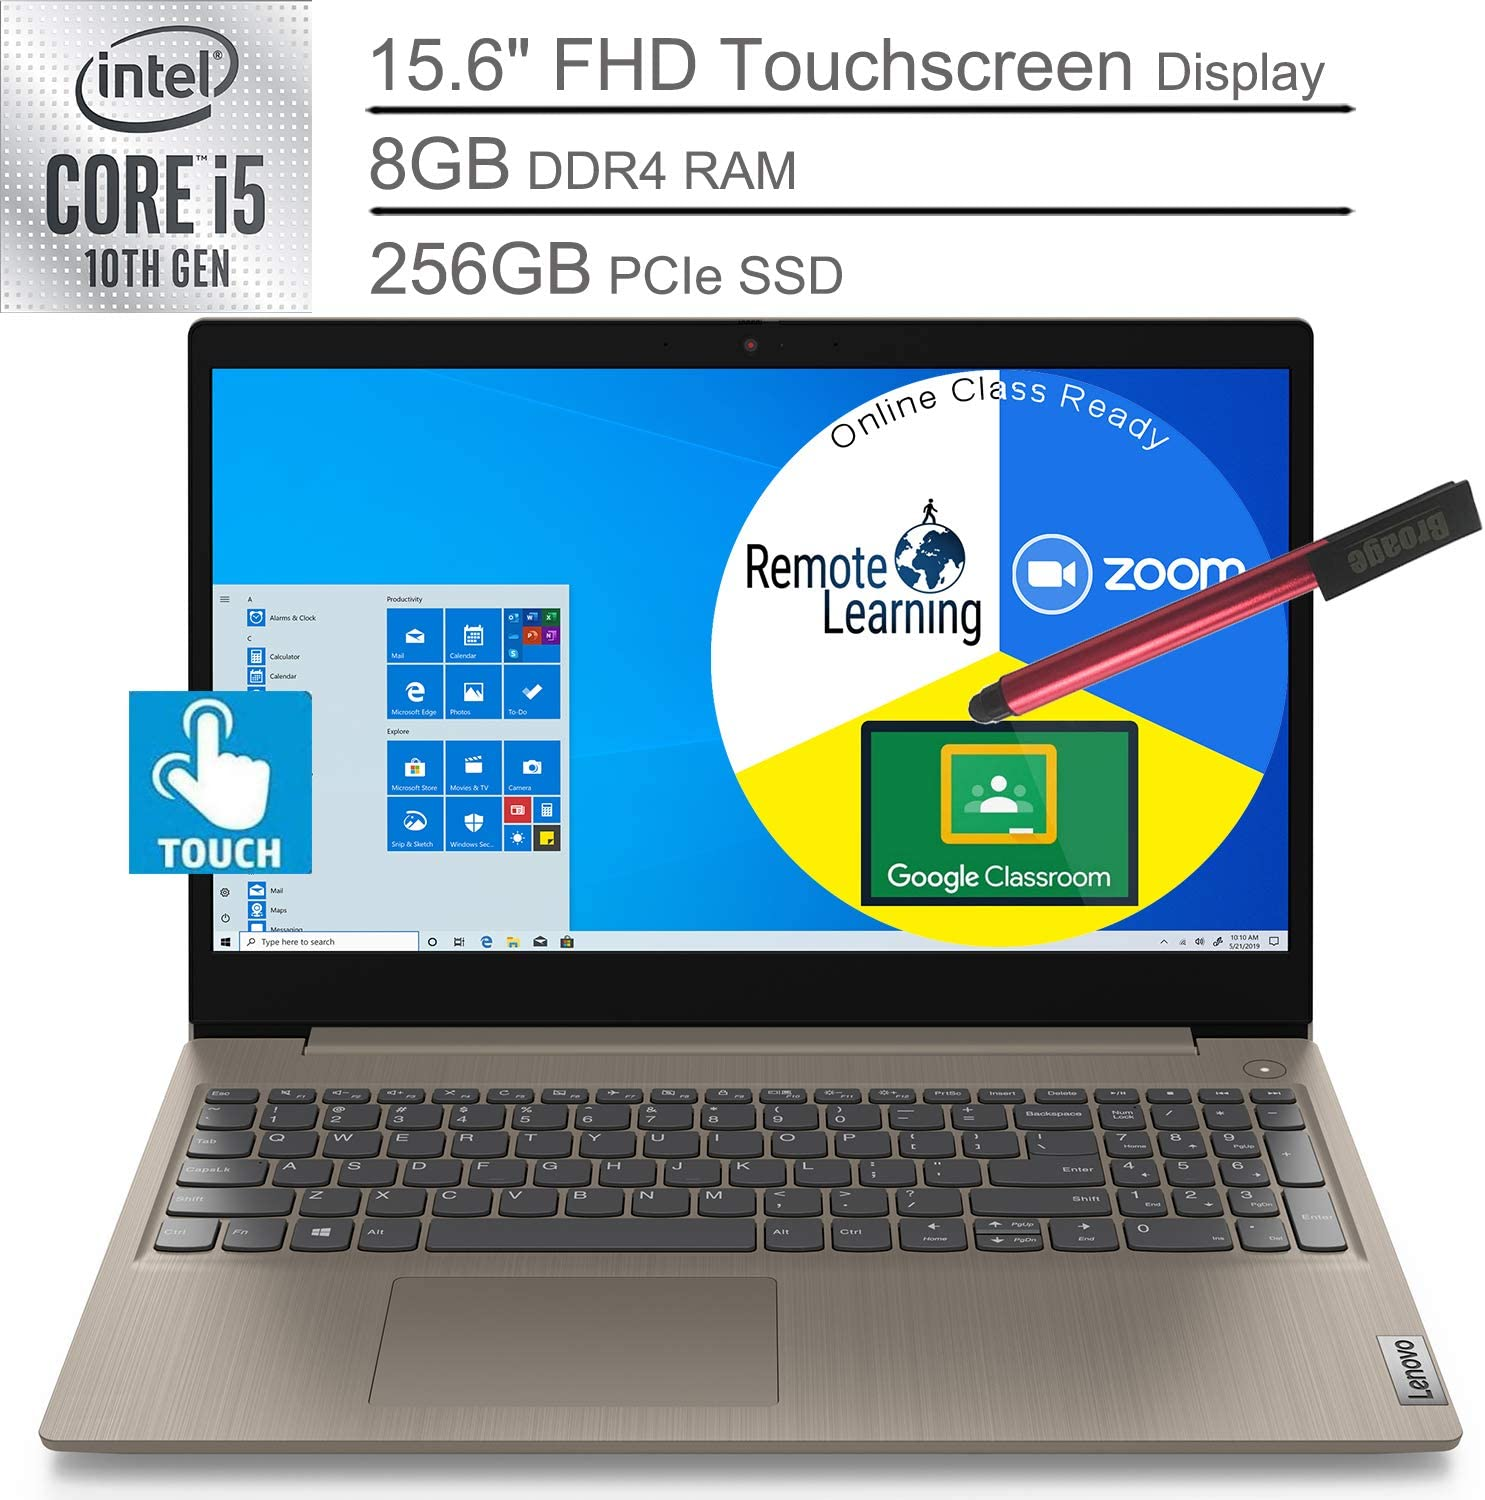 "2020 Lenovo Ideapad 3 15.6"" Touchscreen Laptop Computer_ 10th Gen Intel Core i3 1005G1 (Beats i5-7200u)_ 8GB DDR4 RAM, 256GB PCIe SSD_ Almond_ Windows 10_ BROAGE 64GB Flash Stylus_ Online Class Ready"